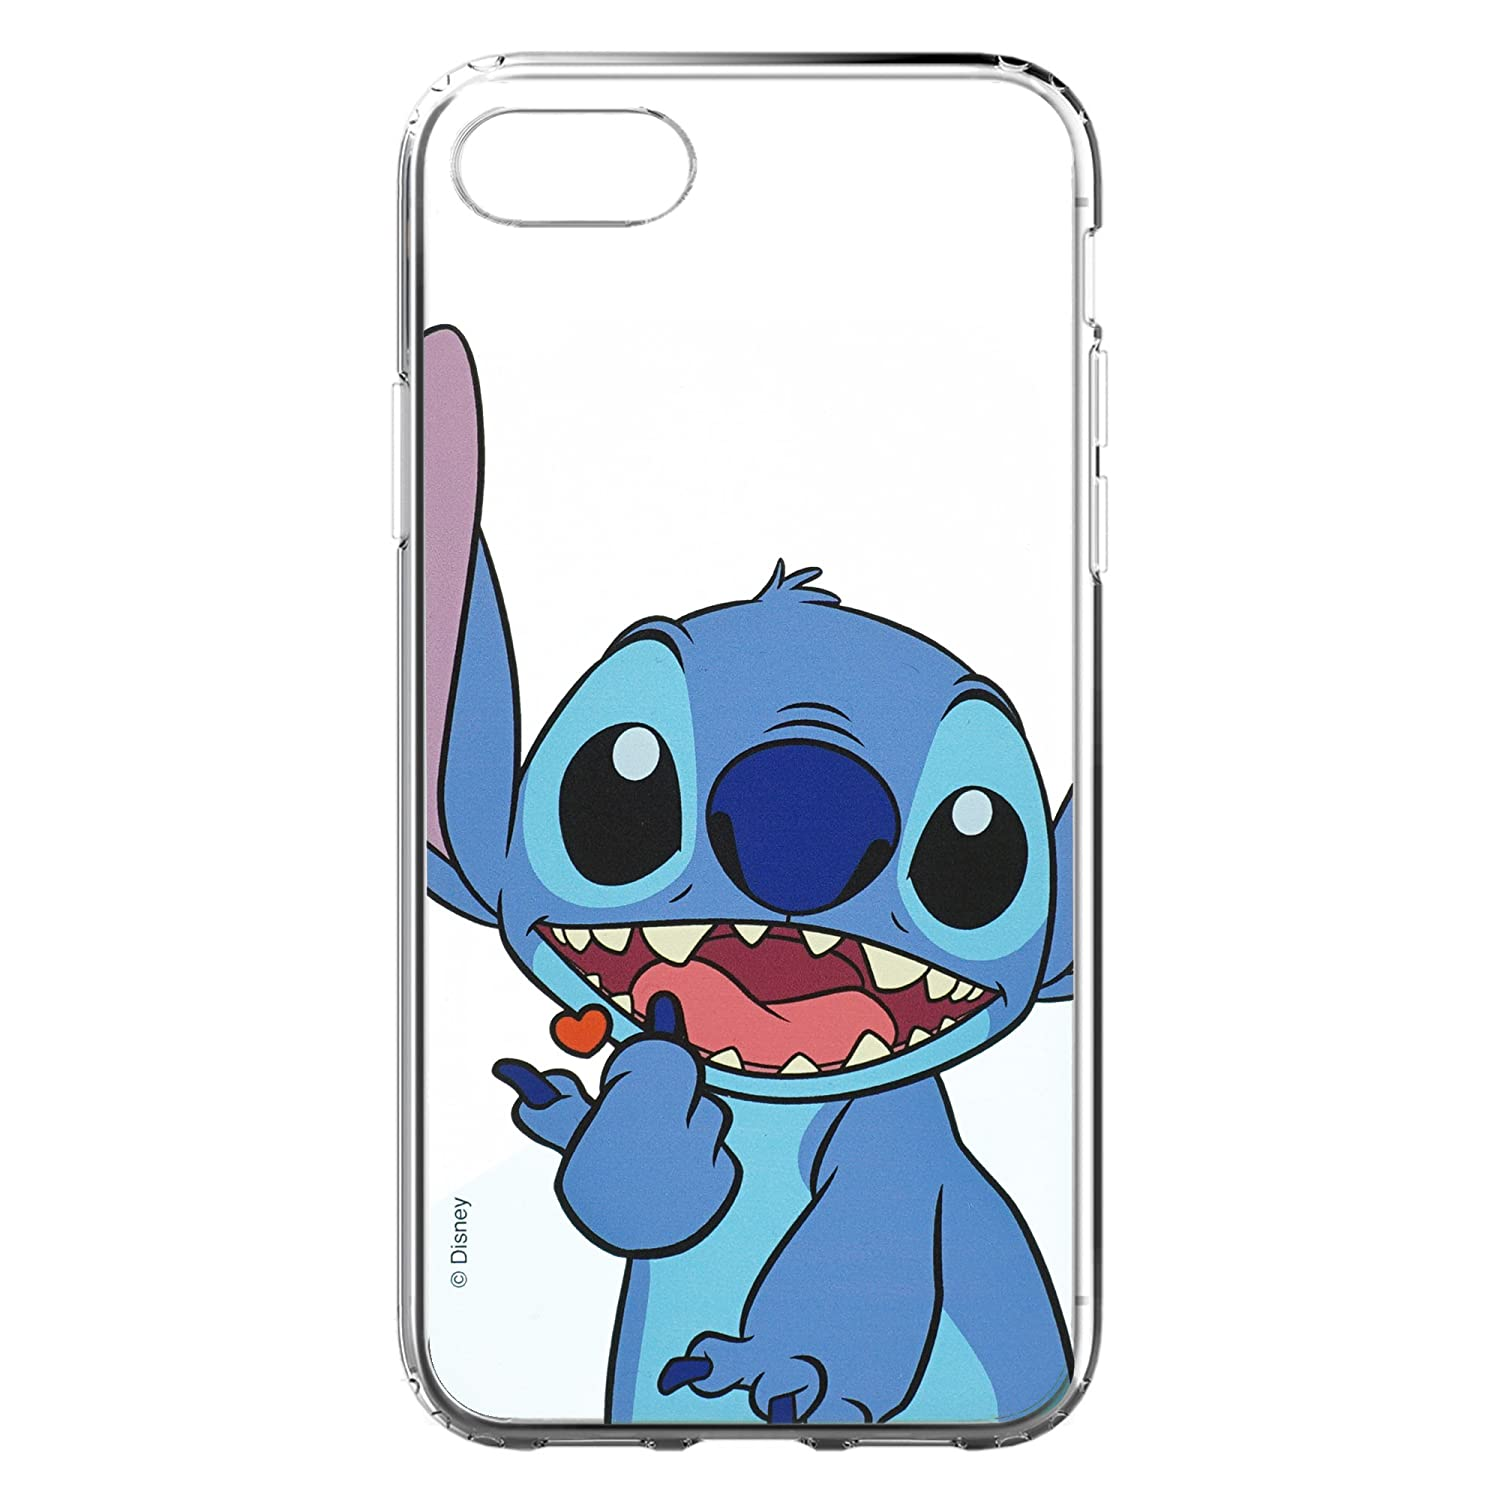 the latest 56c60 ba36d Amazon.com: iPhone 6S Plus/iPhone 6 Plus Case Disney Cute Soft Jelly ...